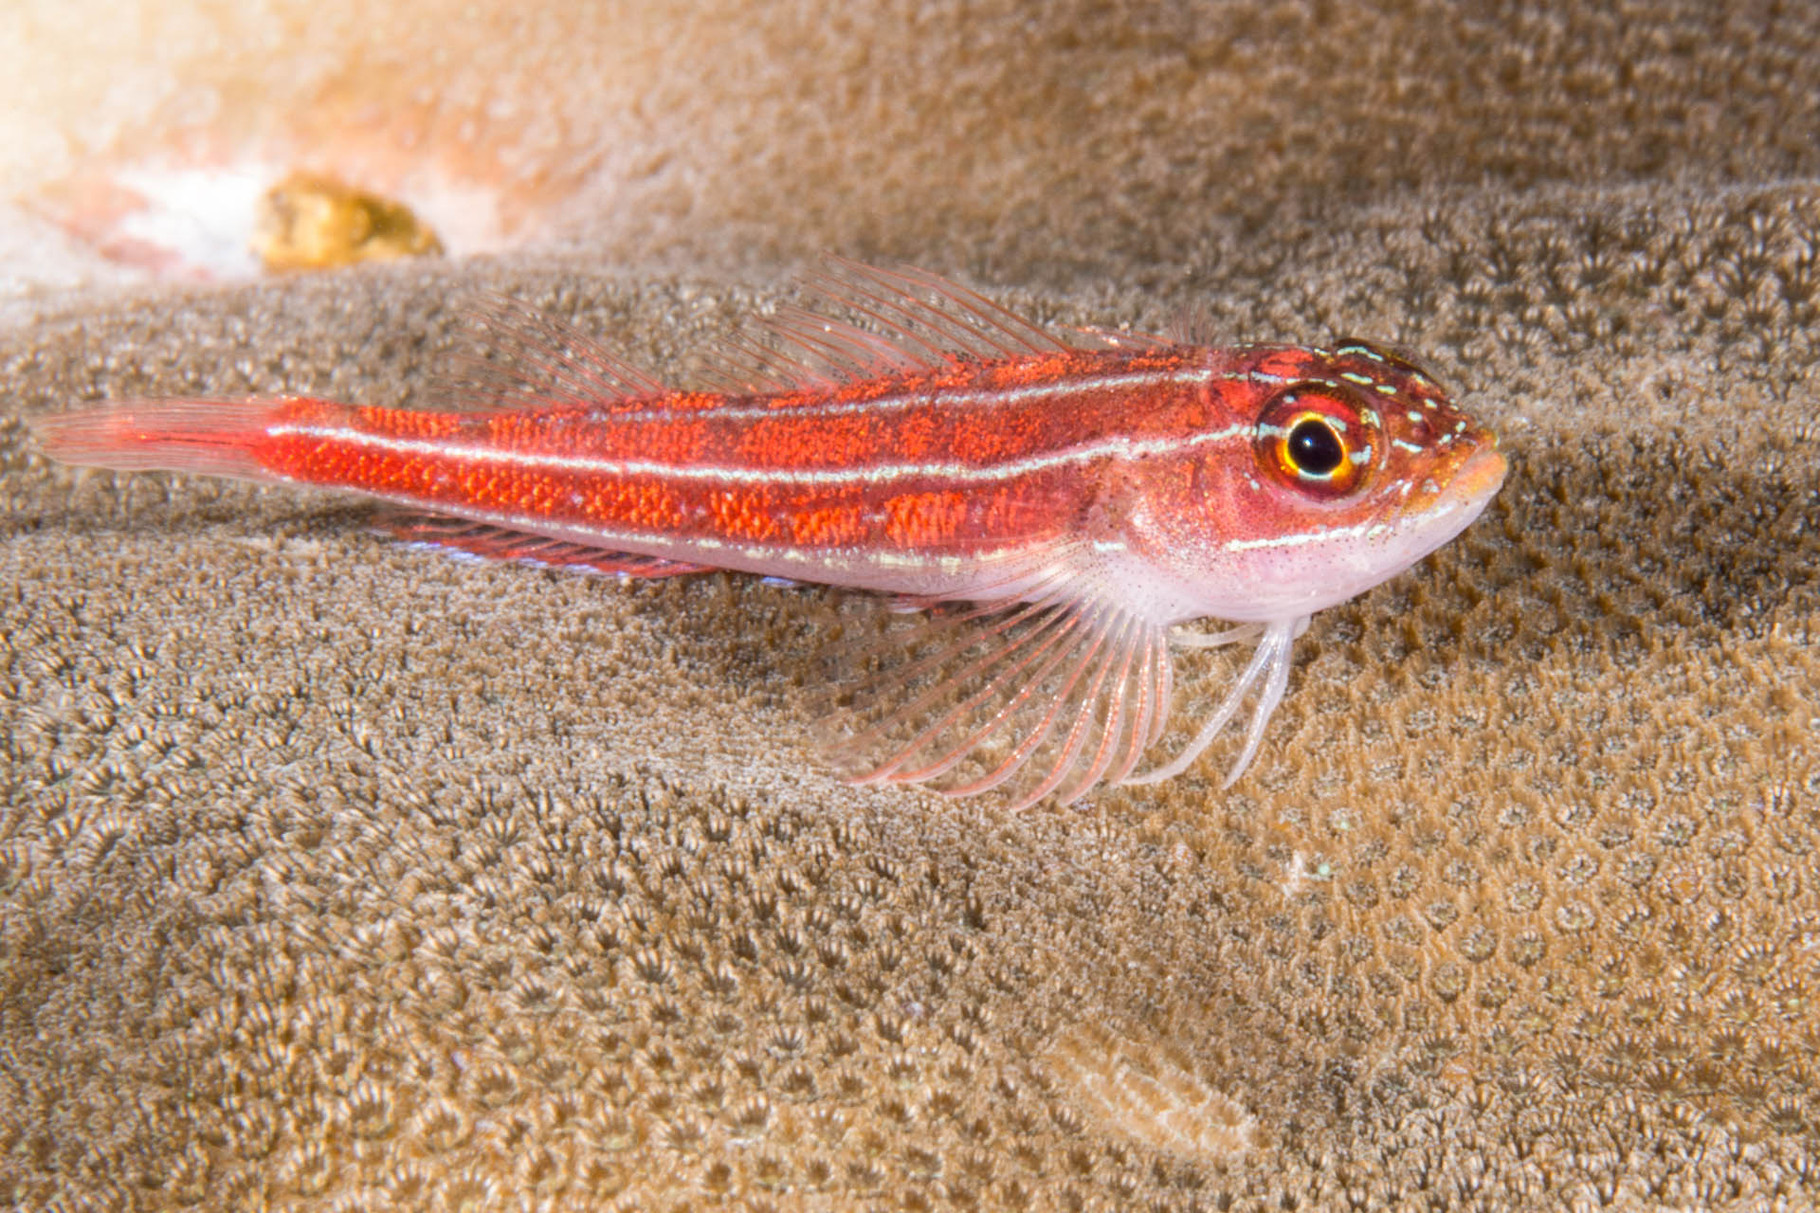 Striped triplefin blenny (Helcogrmma striatum), Green Island